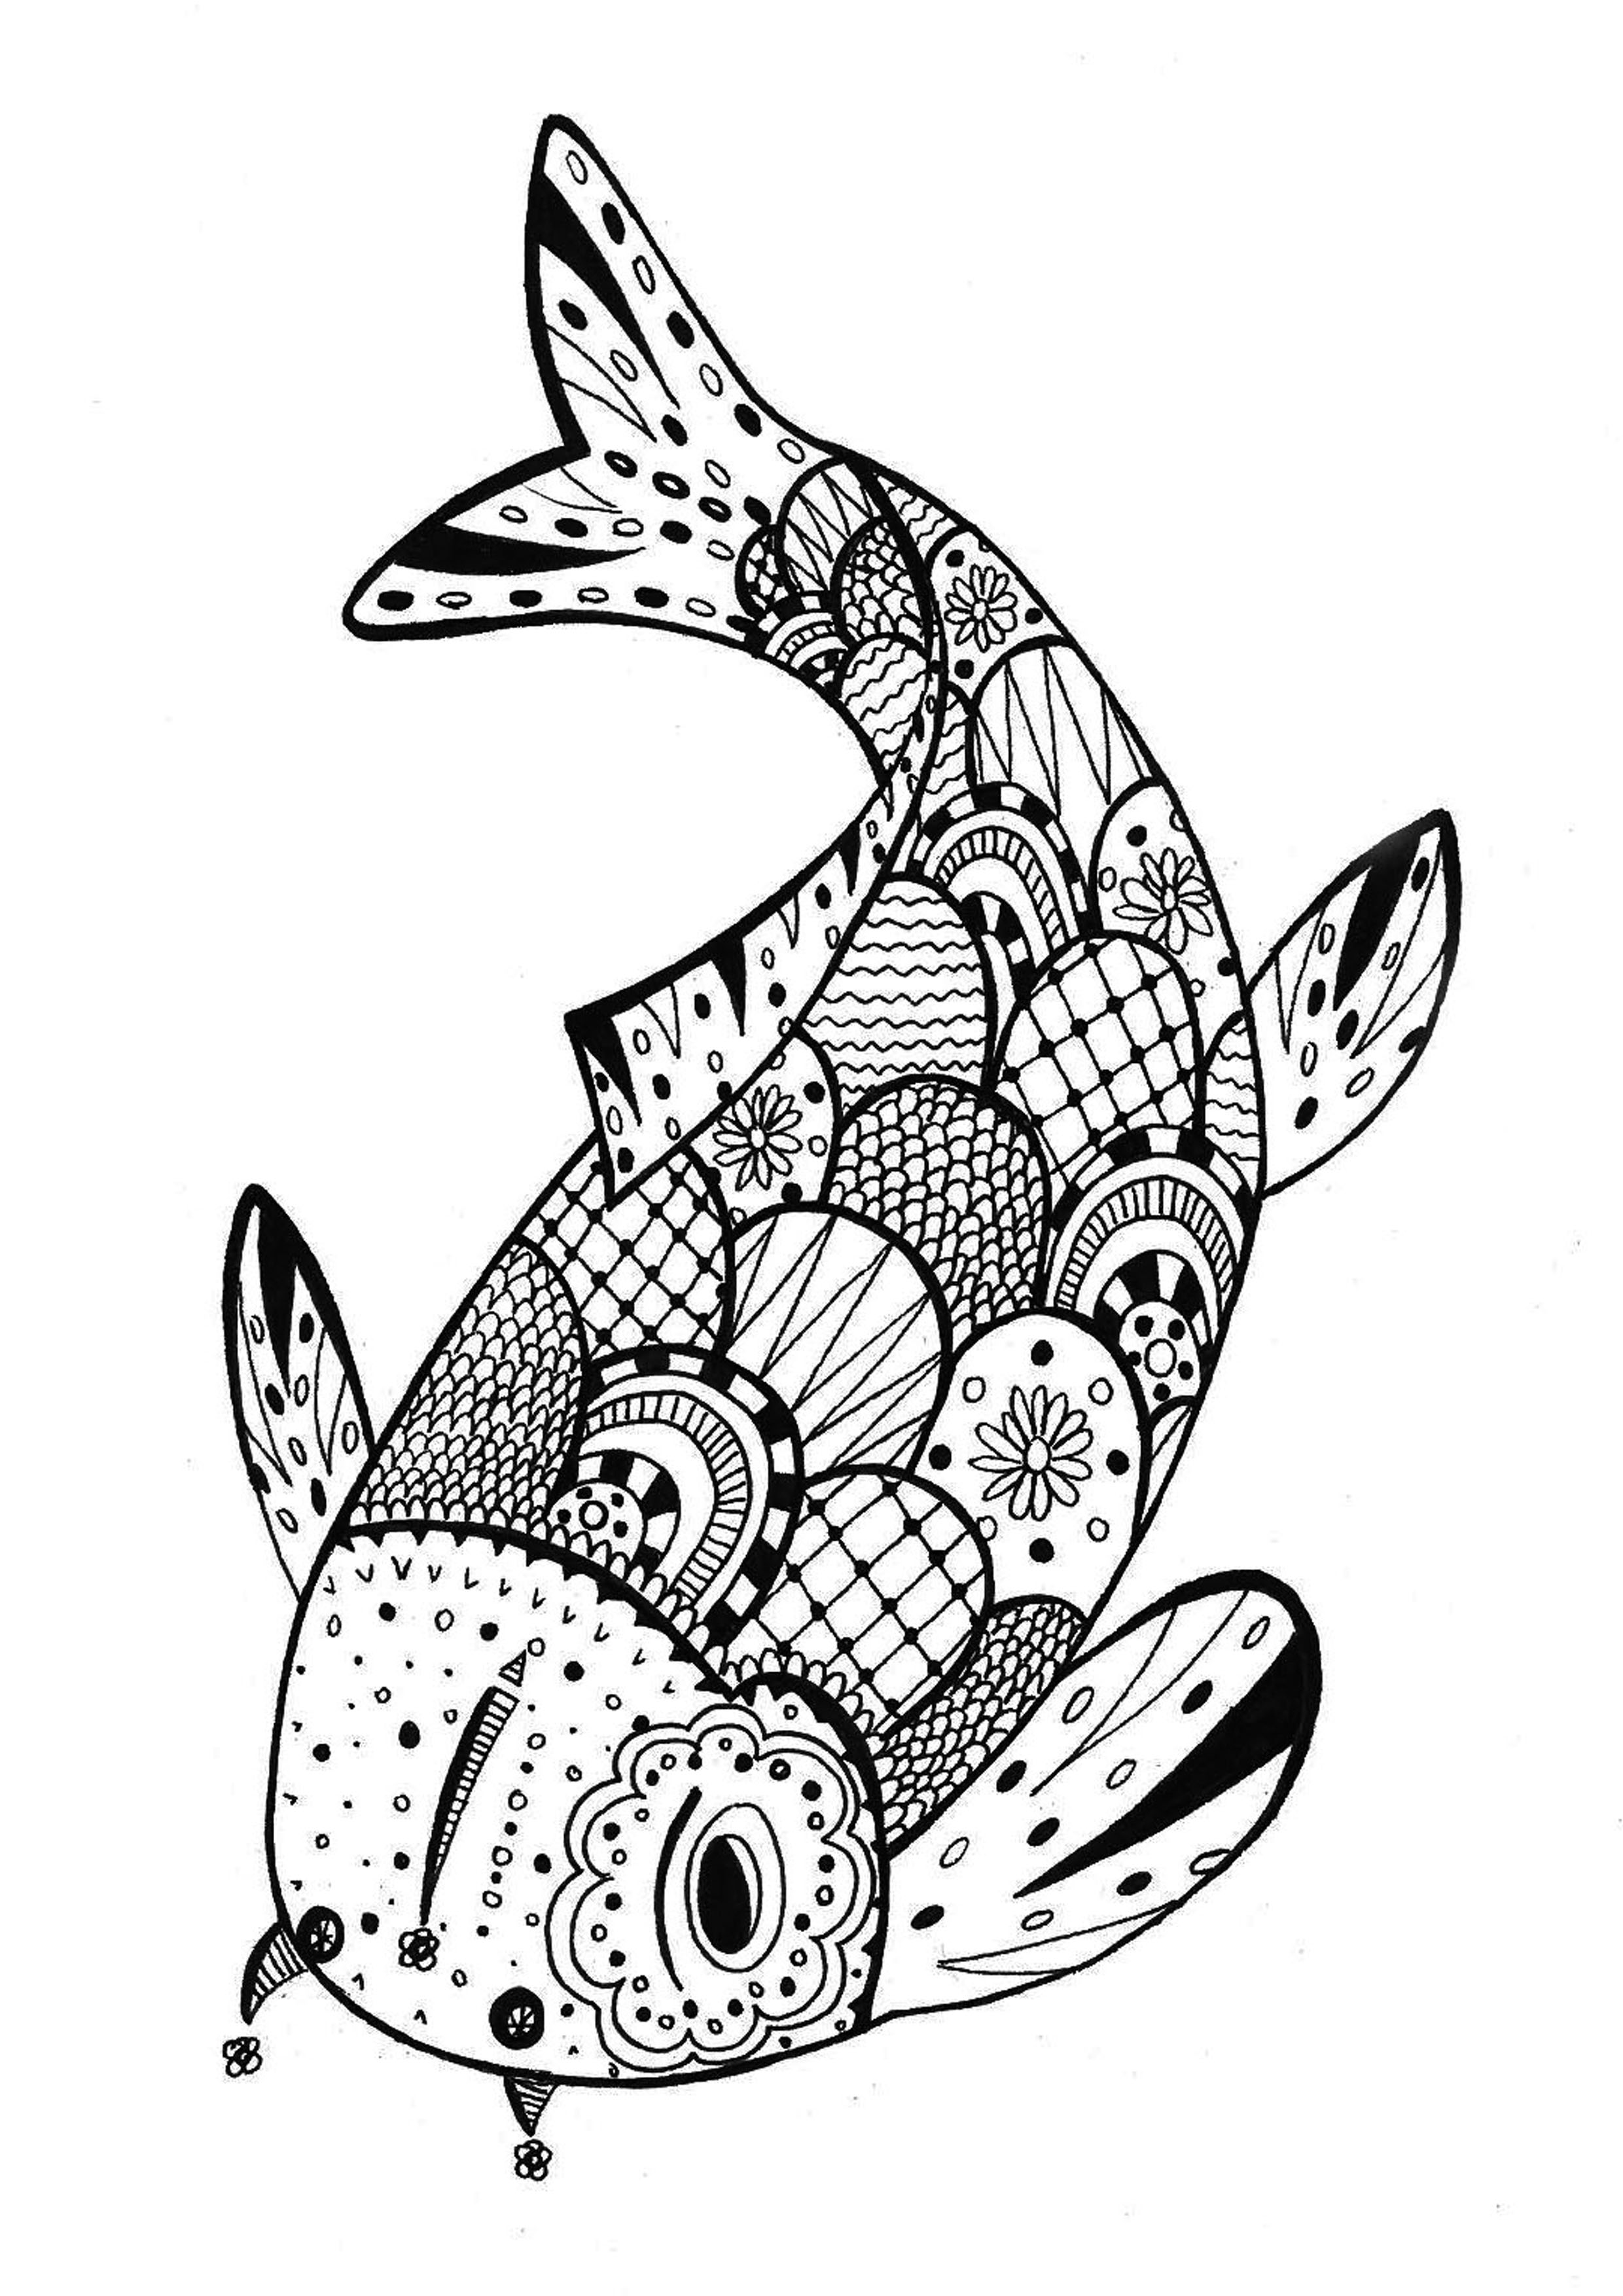 zentangle coloring pages free printable 9 best images of simple zentangle printable bookmarks to zentangle coloring printable pages free